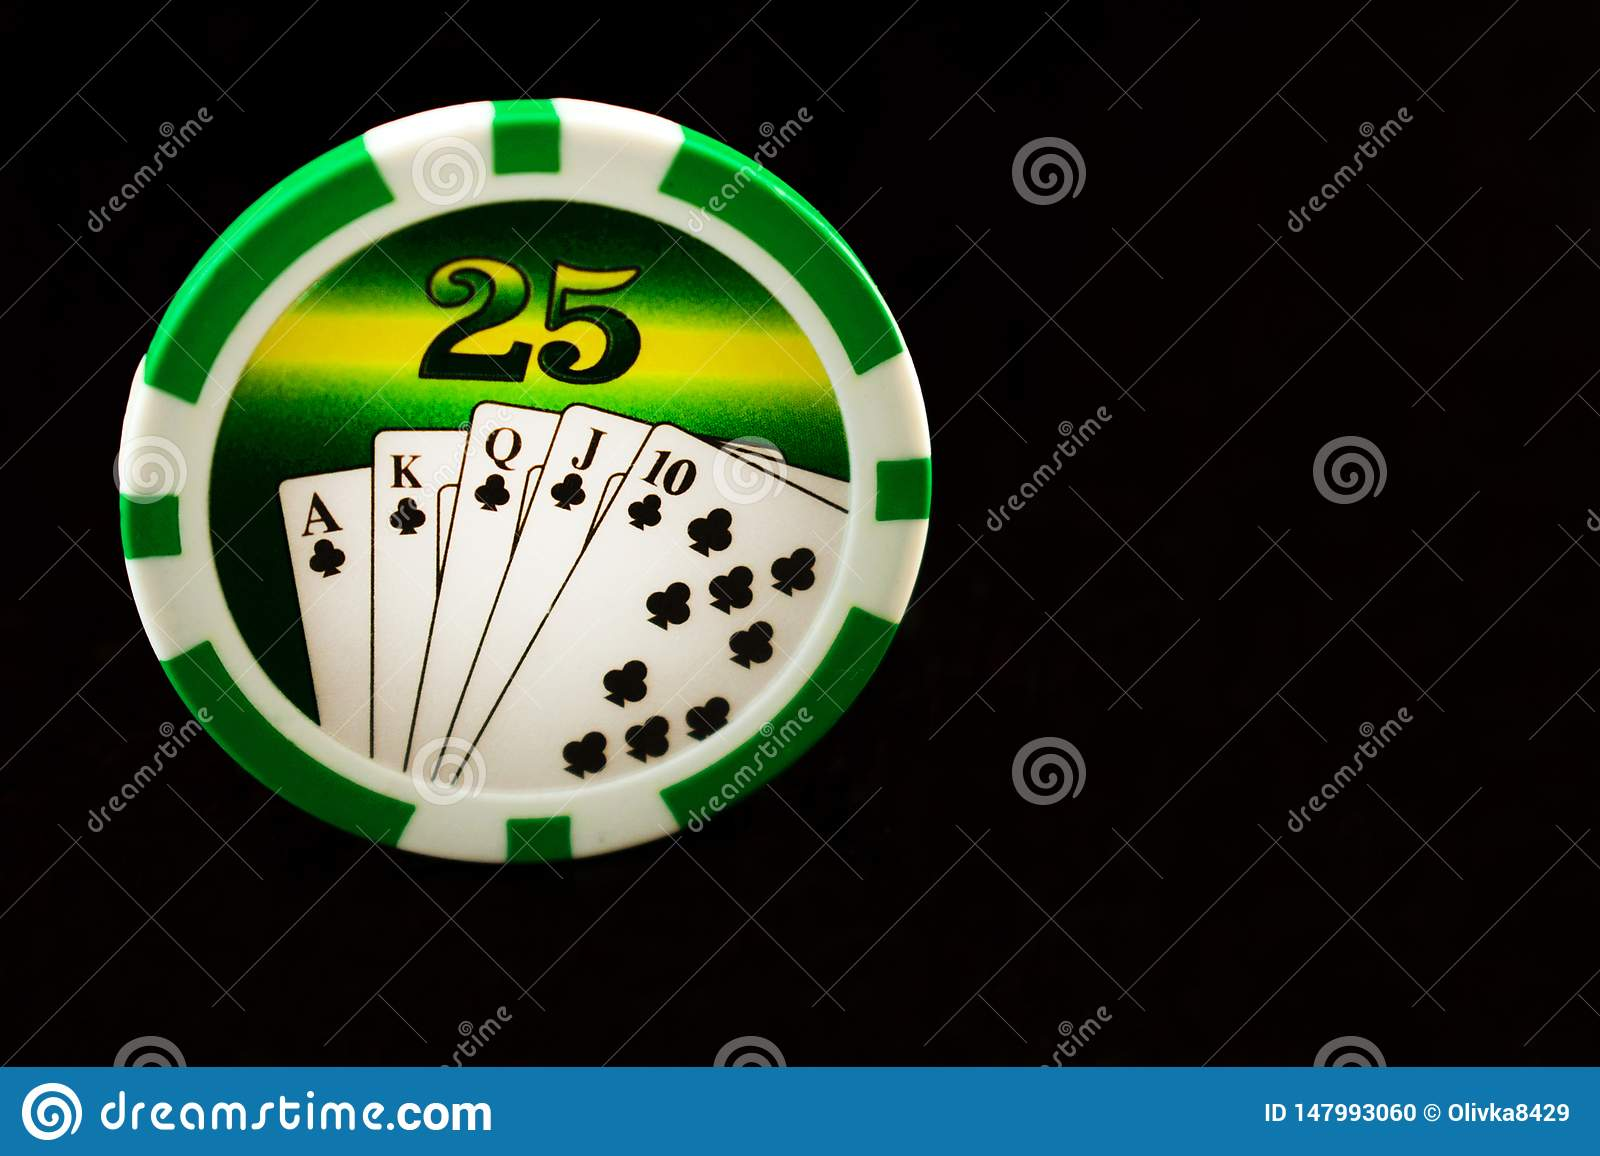 Casino chips on a black background. Gambling